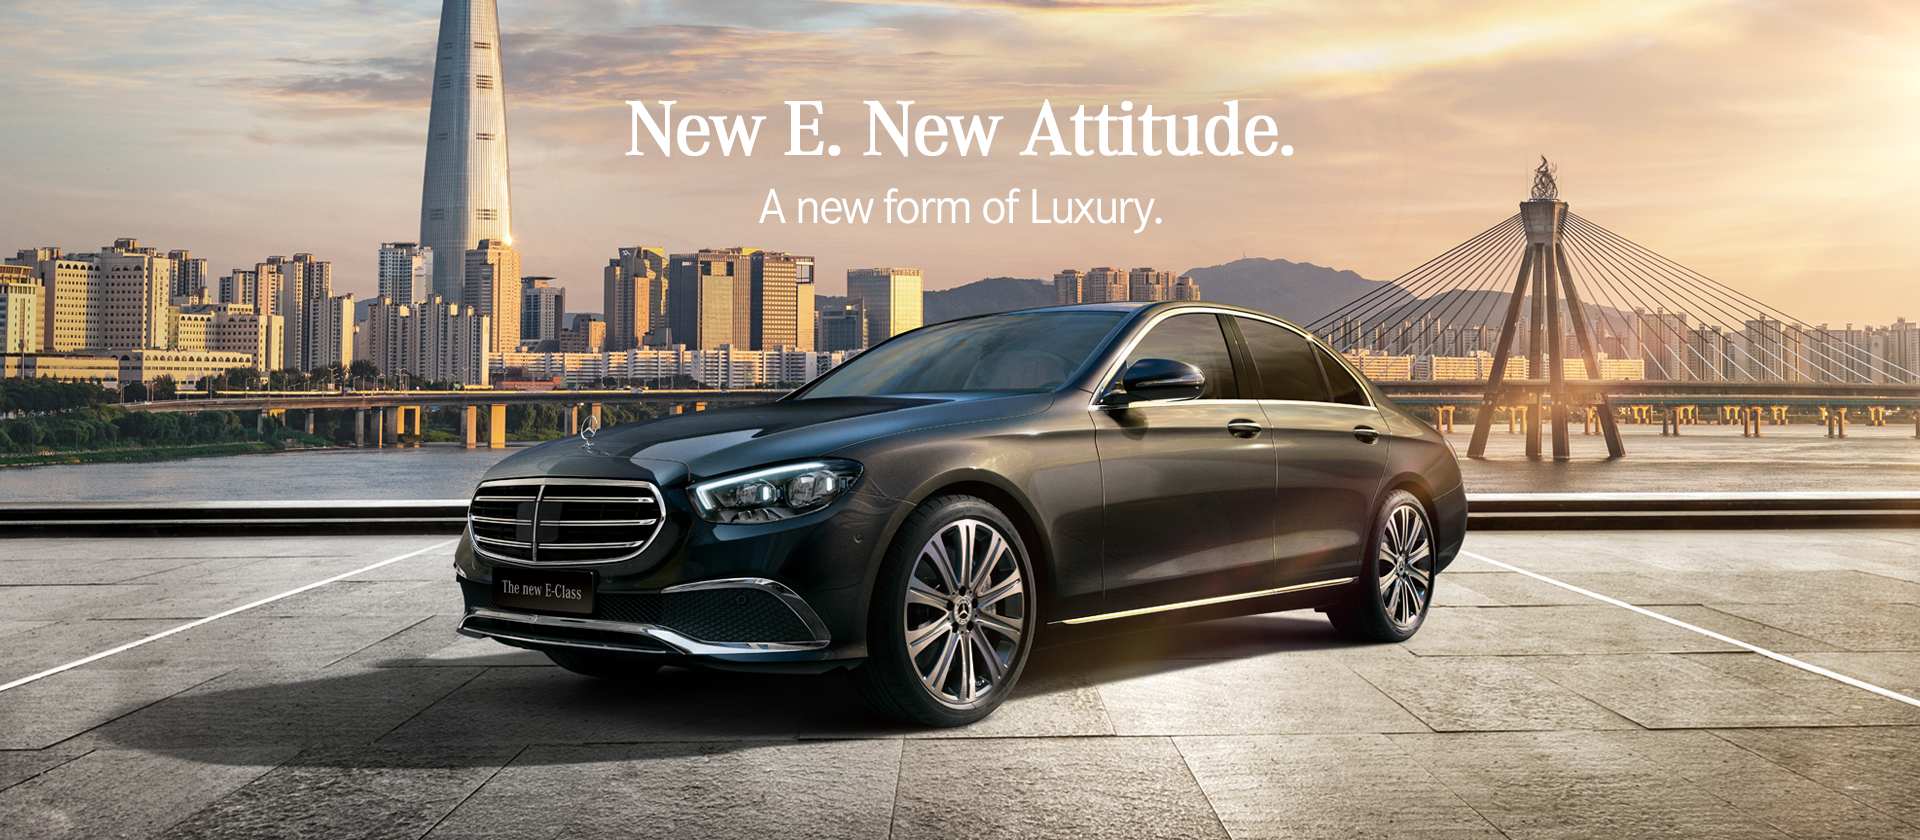 Mercedes-Benz #New-E-New-Attitude